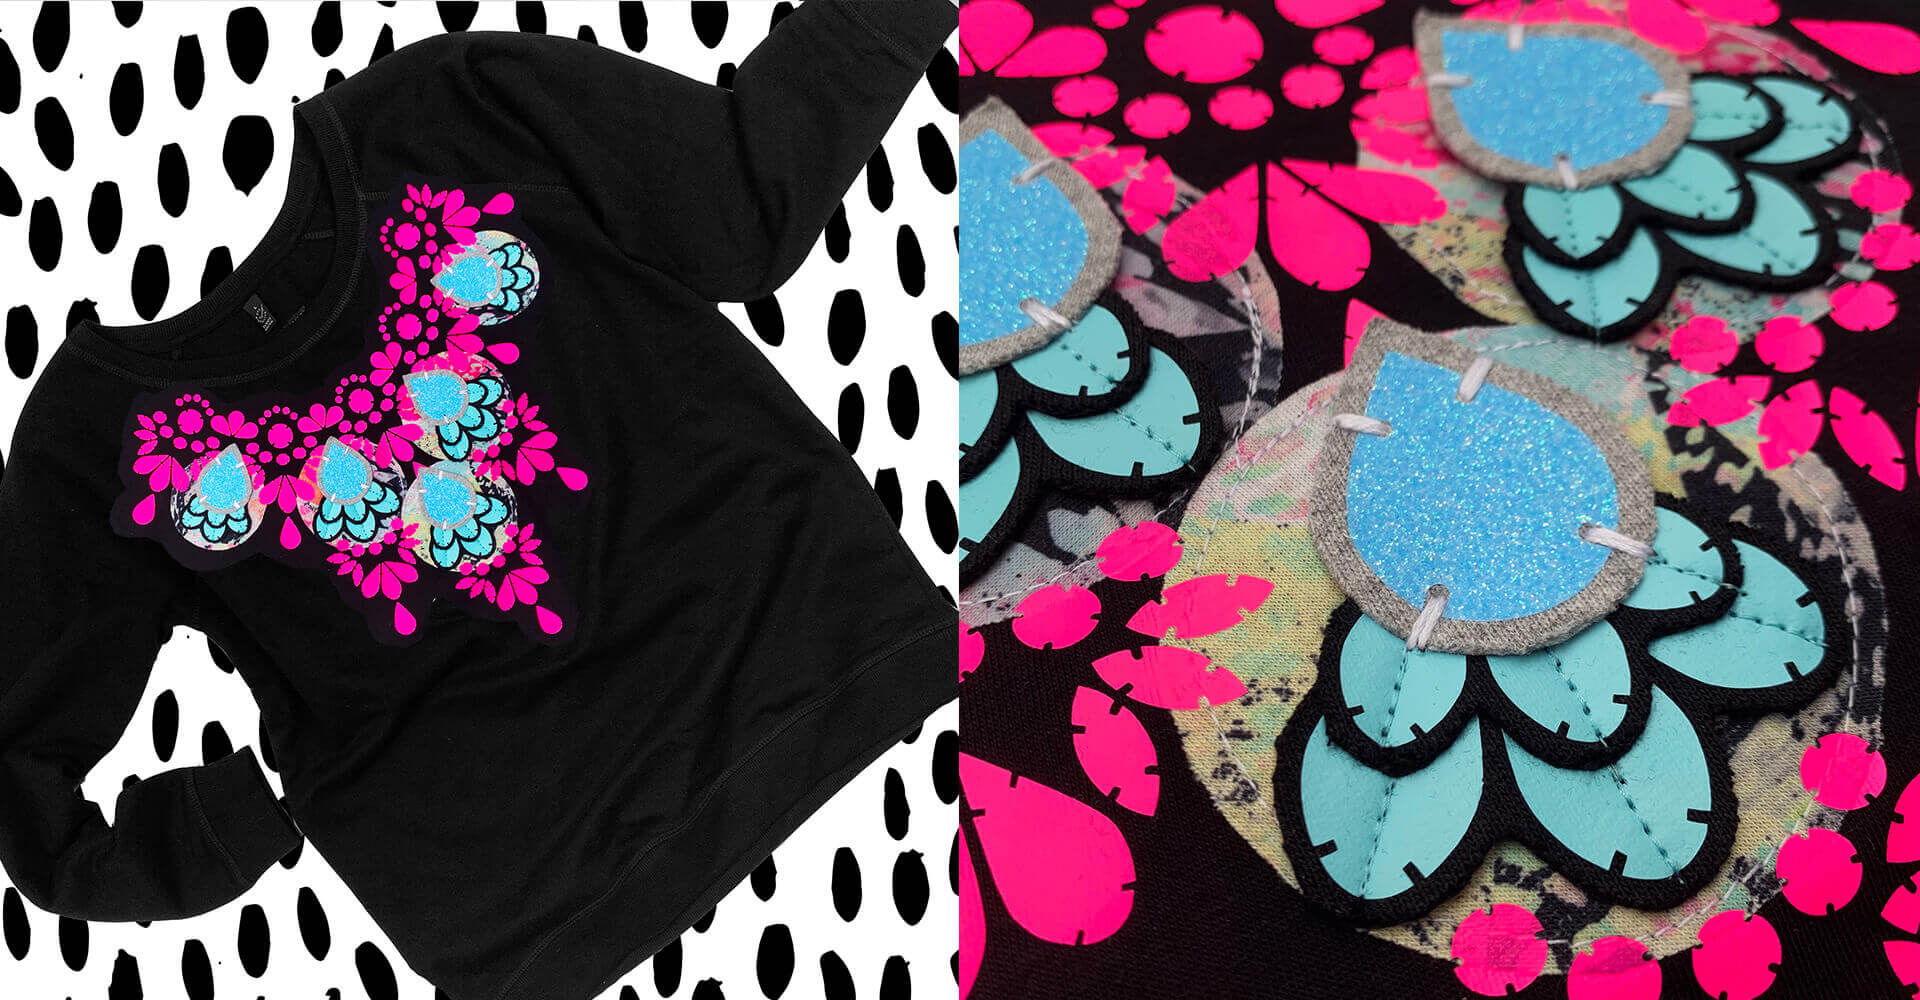 A slim fit women's sweatshirt with a fluorescent pink costume jewellery inspired print over the bib area is laid out flat against a black and white patterned background. The embellished sweatshirt has glittery blue teardrop shapes and recycled fabric applique panels.